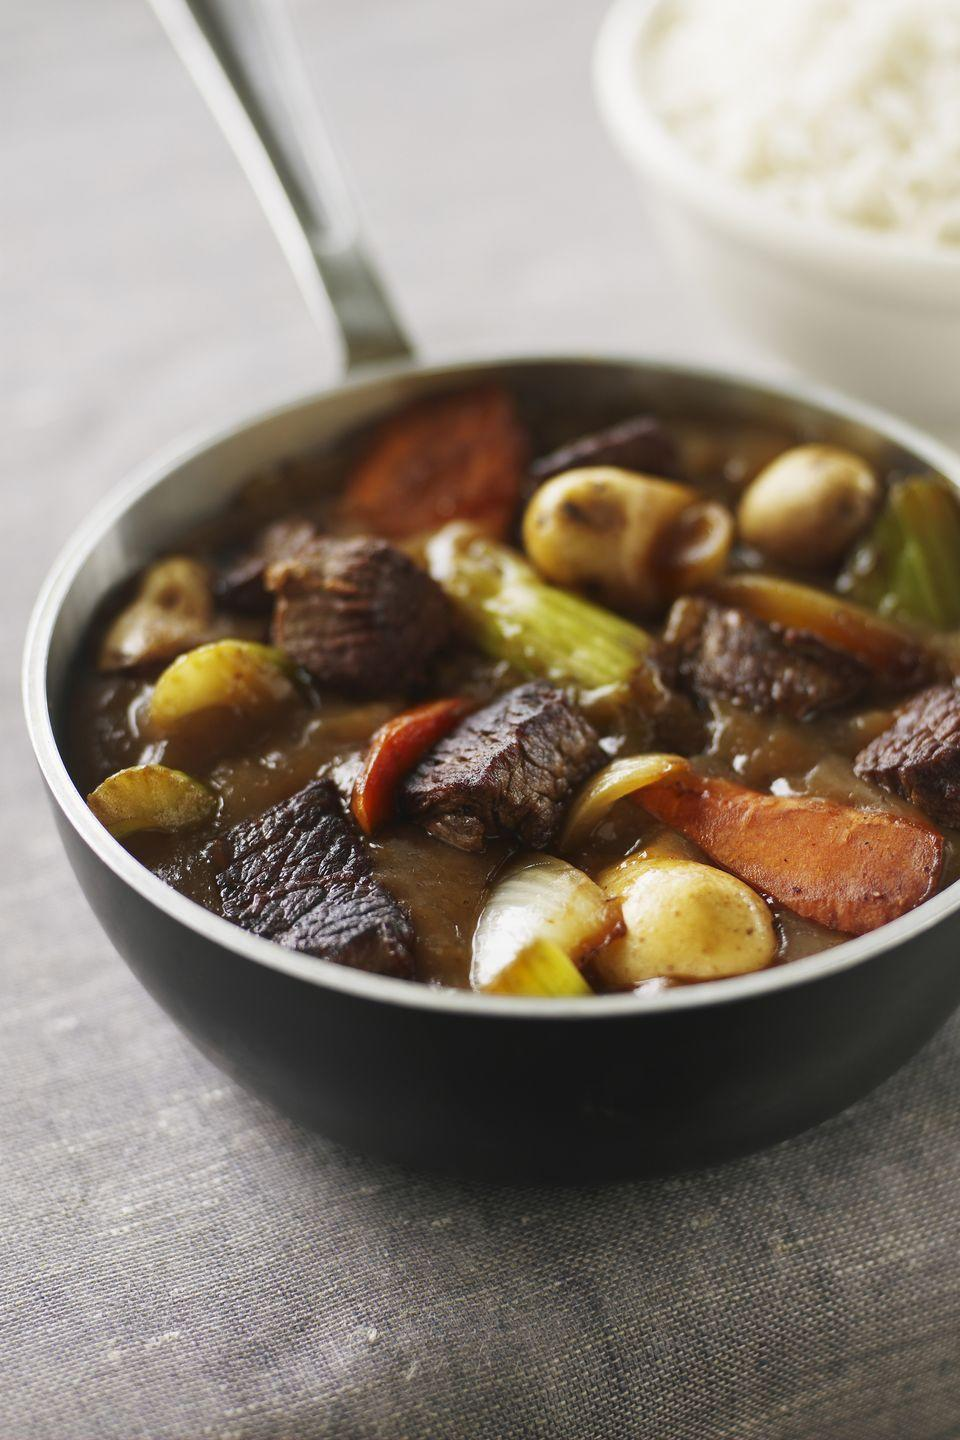 """<p>Serve up this stew for a hearty dinner brimming with Irish flavors.</p><p><a href=""""https://www.goodhousekeeping.com/recipefinder/rustic-lamb-stew-2142"""" rel=""""nofollow noopener"""" target=""""_blank"""" data-ylk=""""slk:Get the recipe for Rustic Lamb Stew »"""" class=""""link rapid-noclick-resp""""><em>Get the recipe for Rustic Lamb Stew »</em></a></p>"""